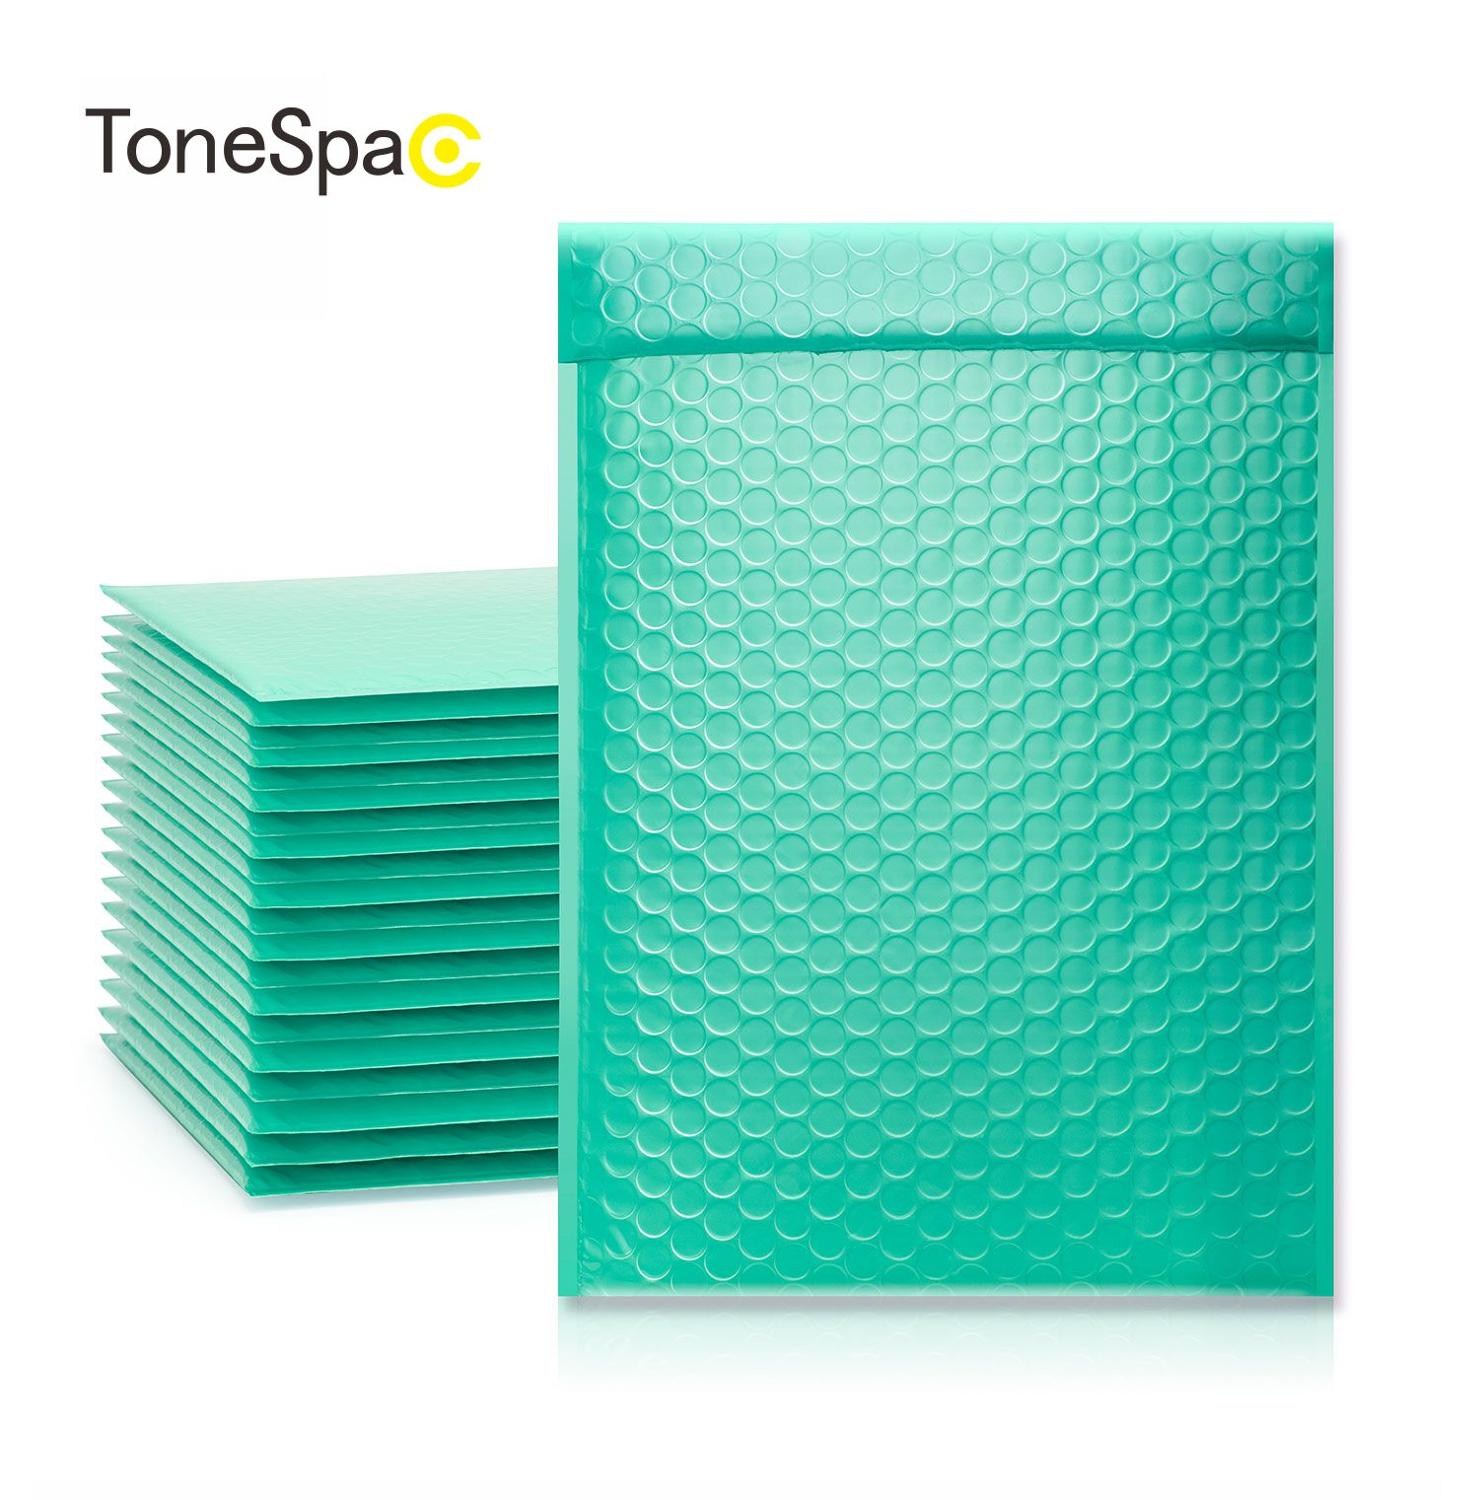 TONESPAC 190*260mm 10pcs Bubble Mailer Shipping Padded Envelope Self Seal Wrap Waterproof Mailing Packaging Bags Teal